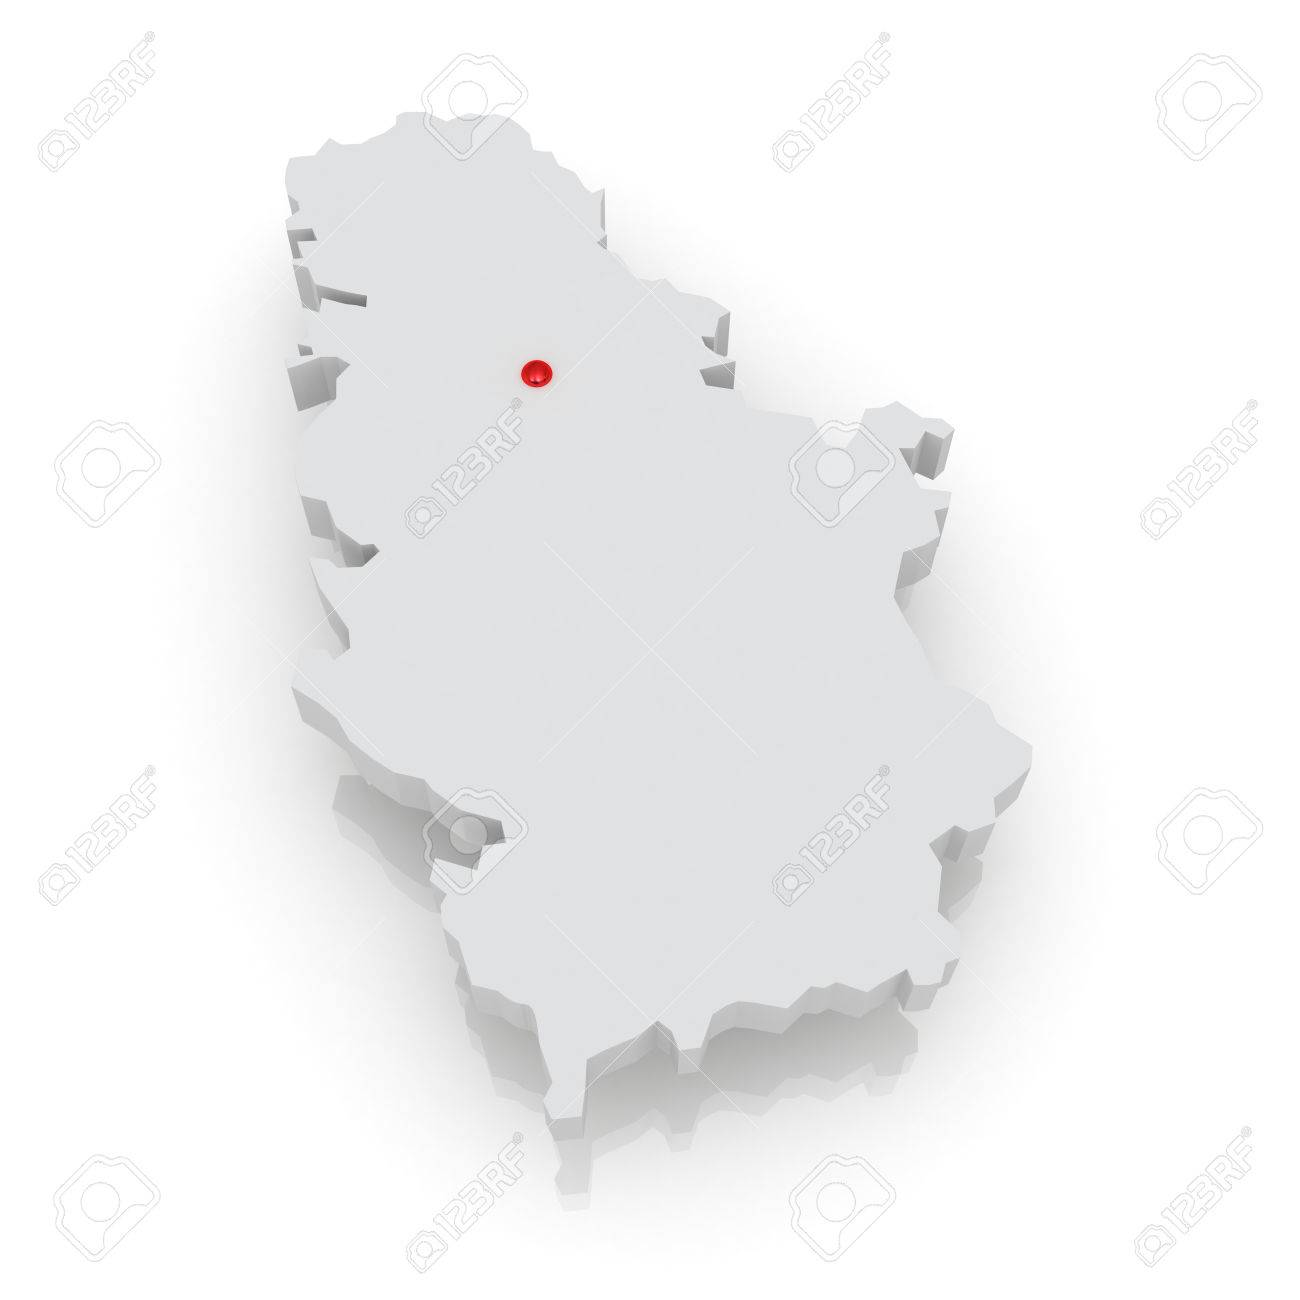 Map Of Serbia D Stock Photo Picture And Royalty Free Image - Map of serbia